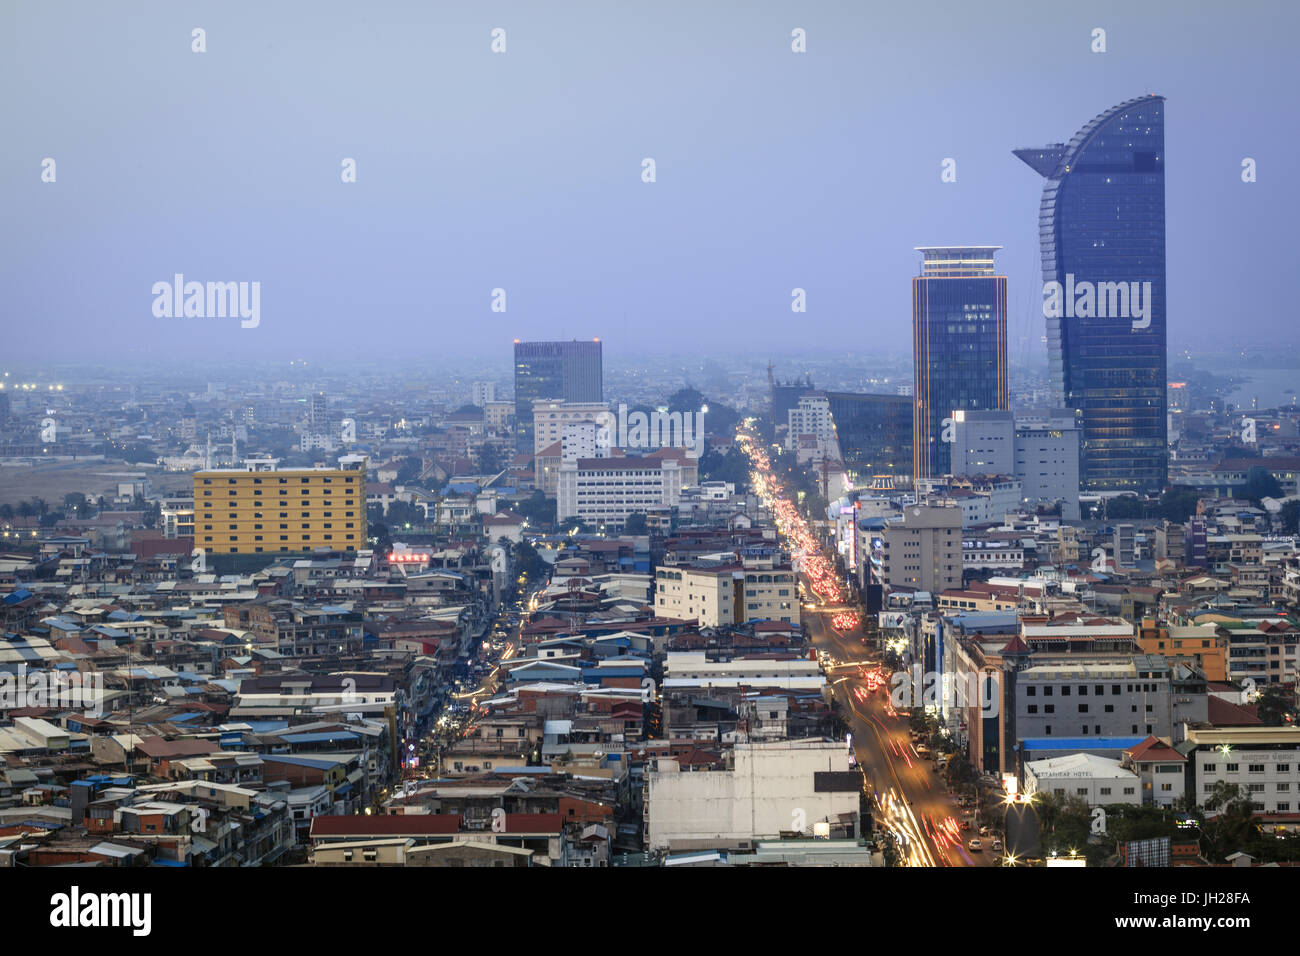 View of the city centre and downtown Central business district, Phnom Penh, Cambodia, Indochina, Southeast Asia, - Stock Image